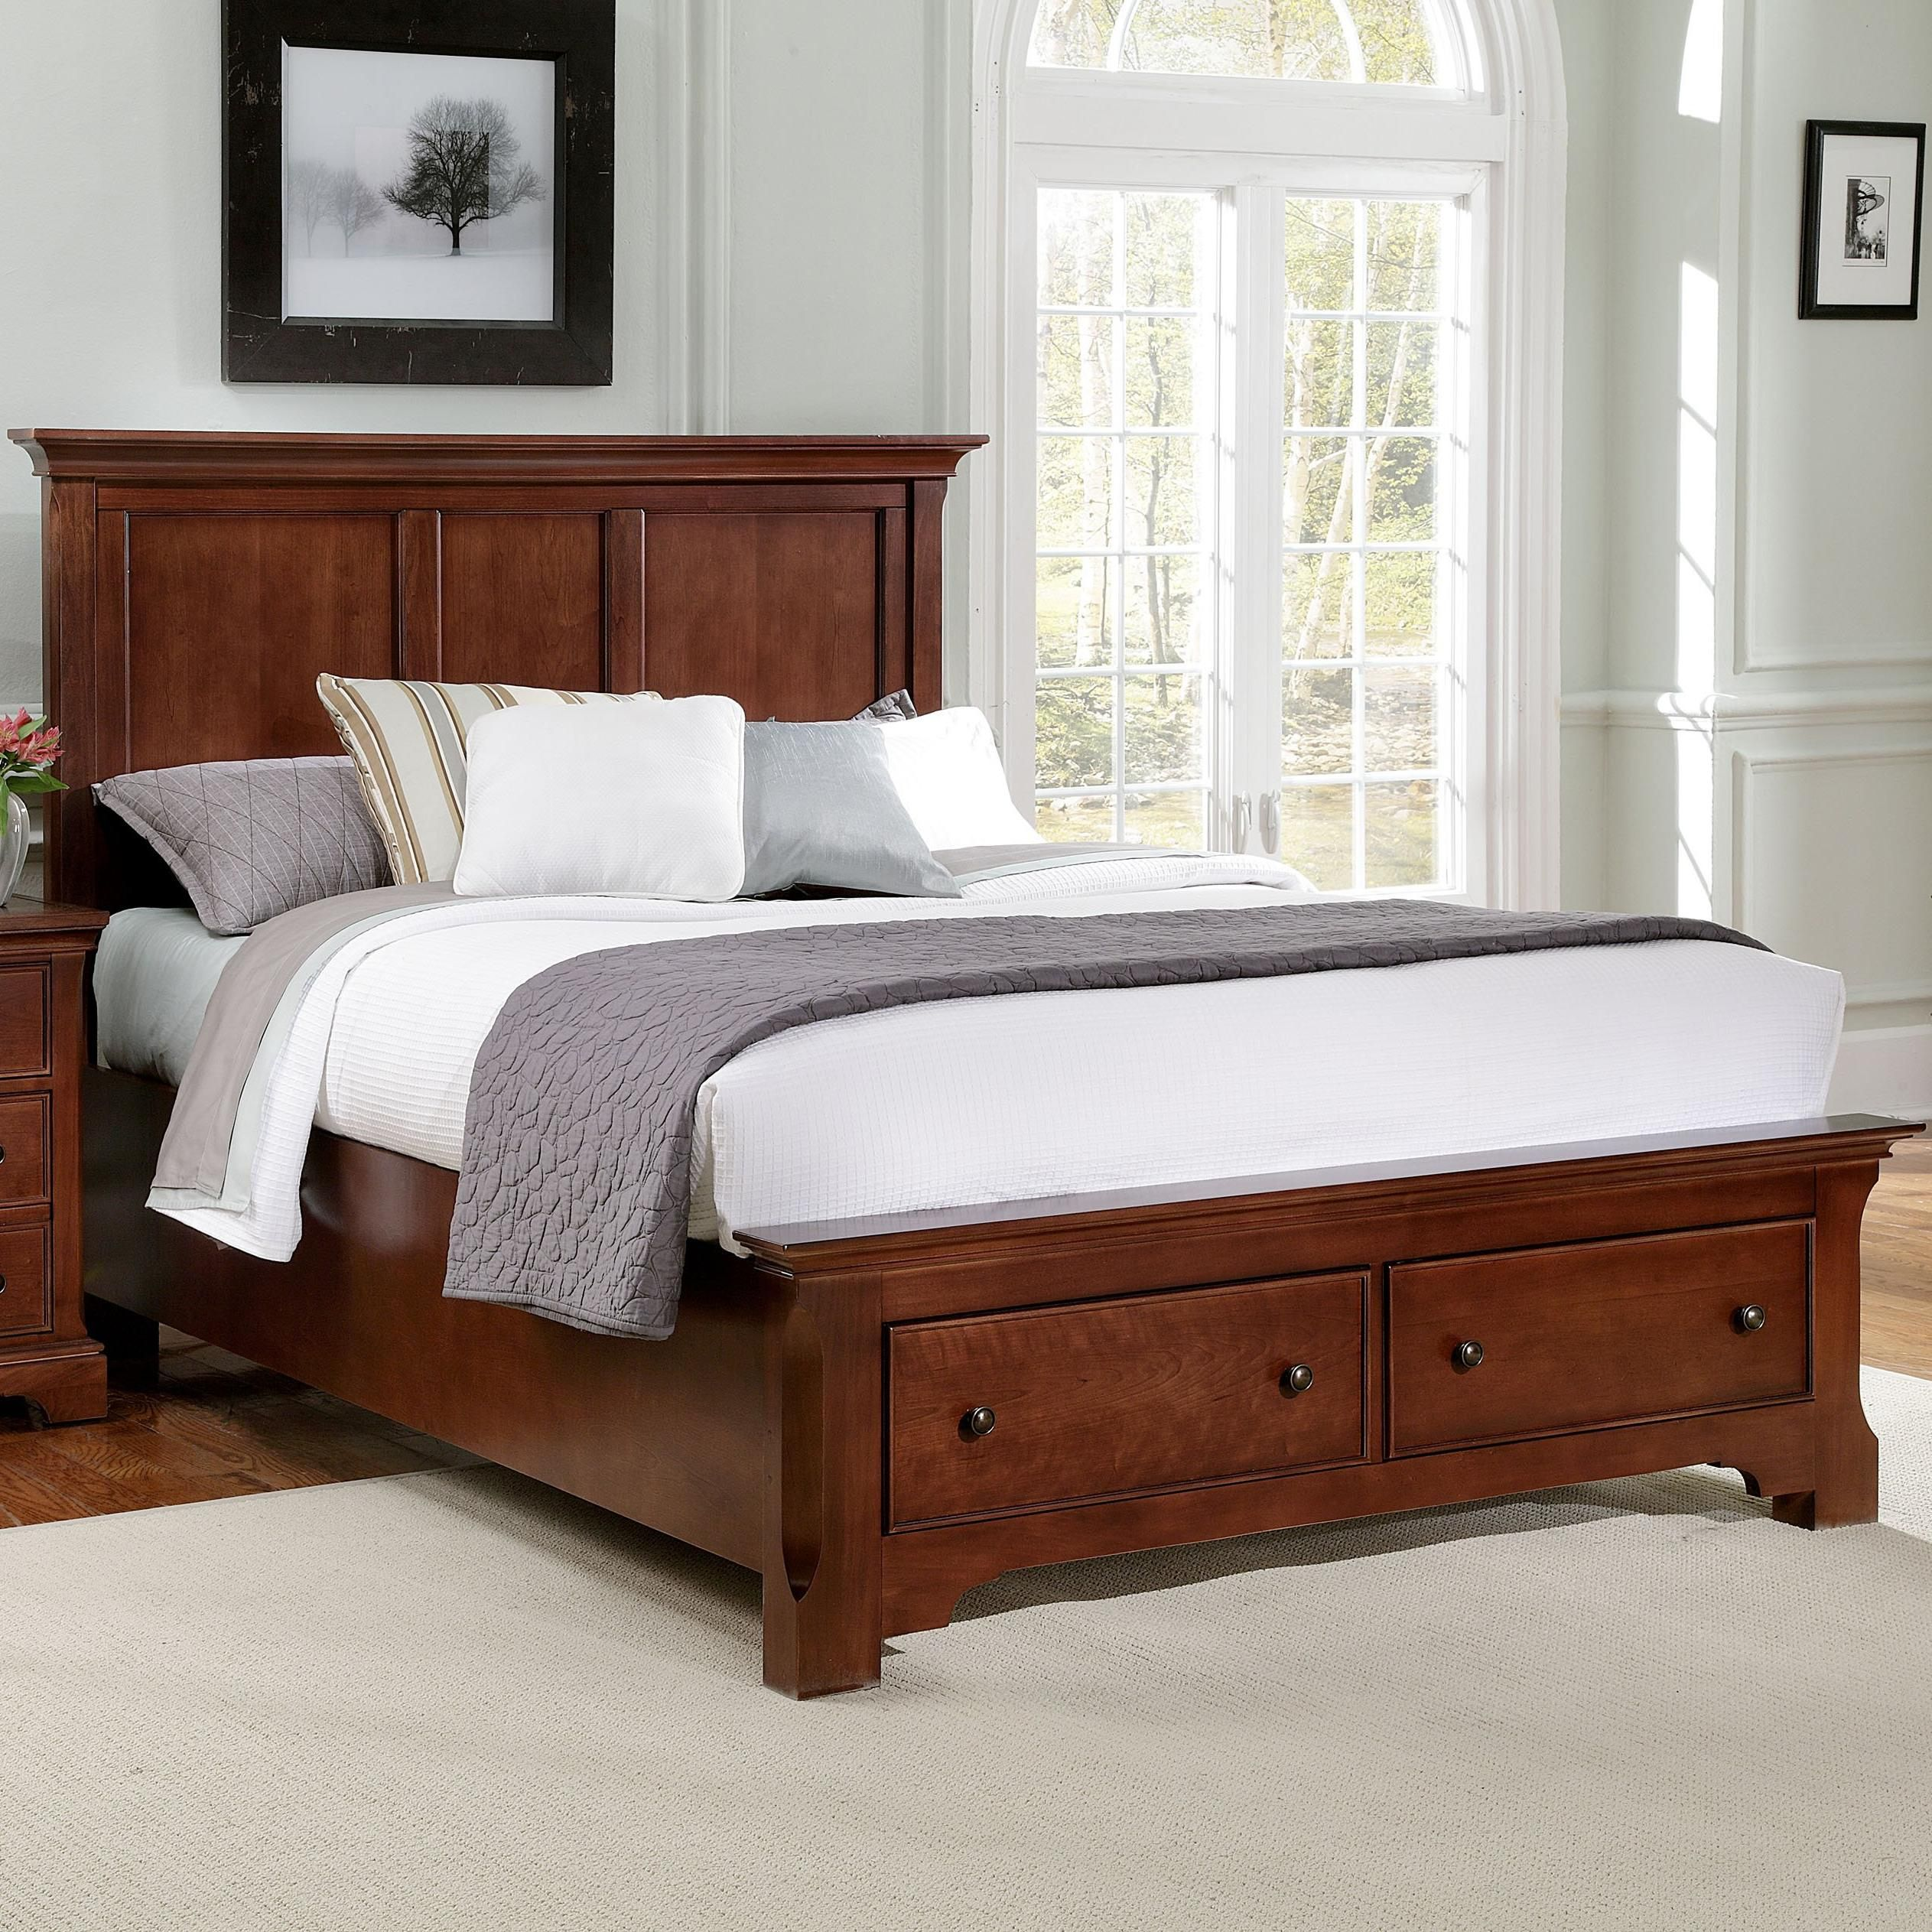 Forsyth full headboard and footboard storage bed by vaughan bassett